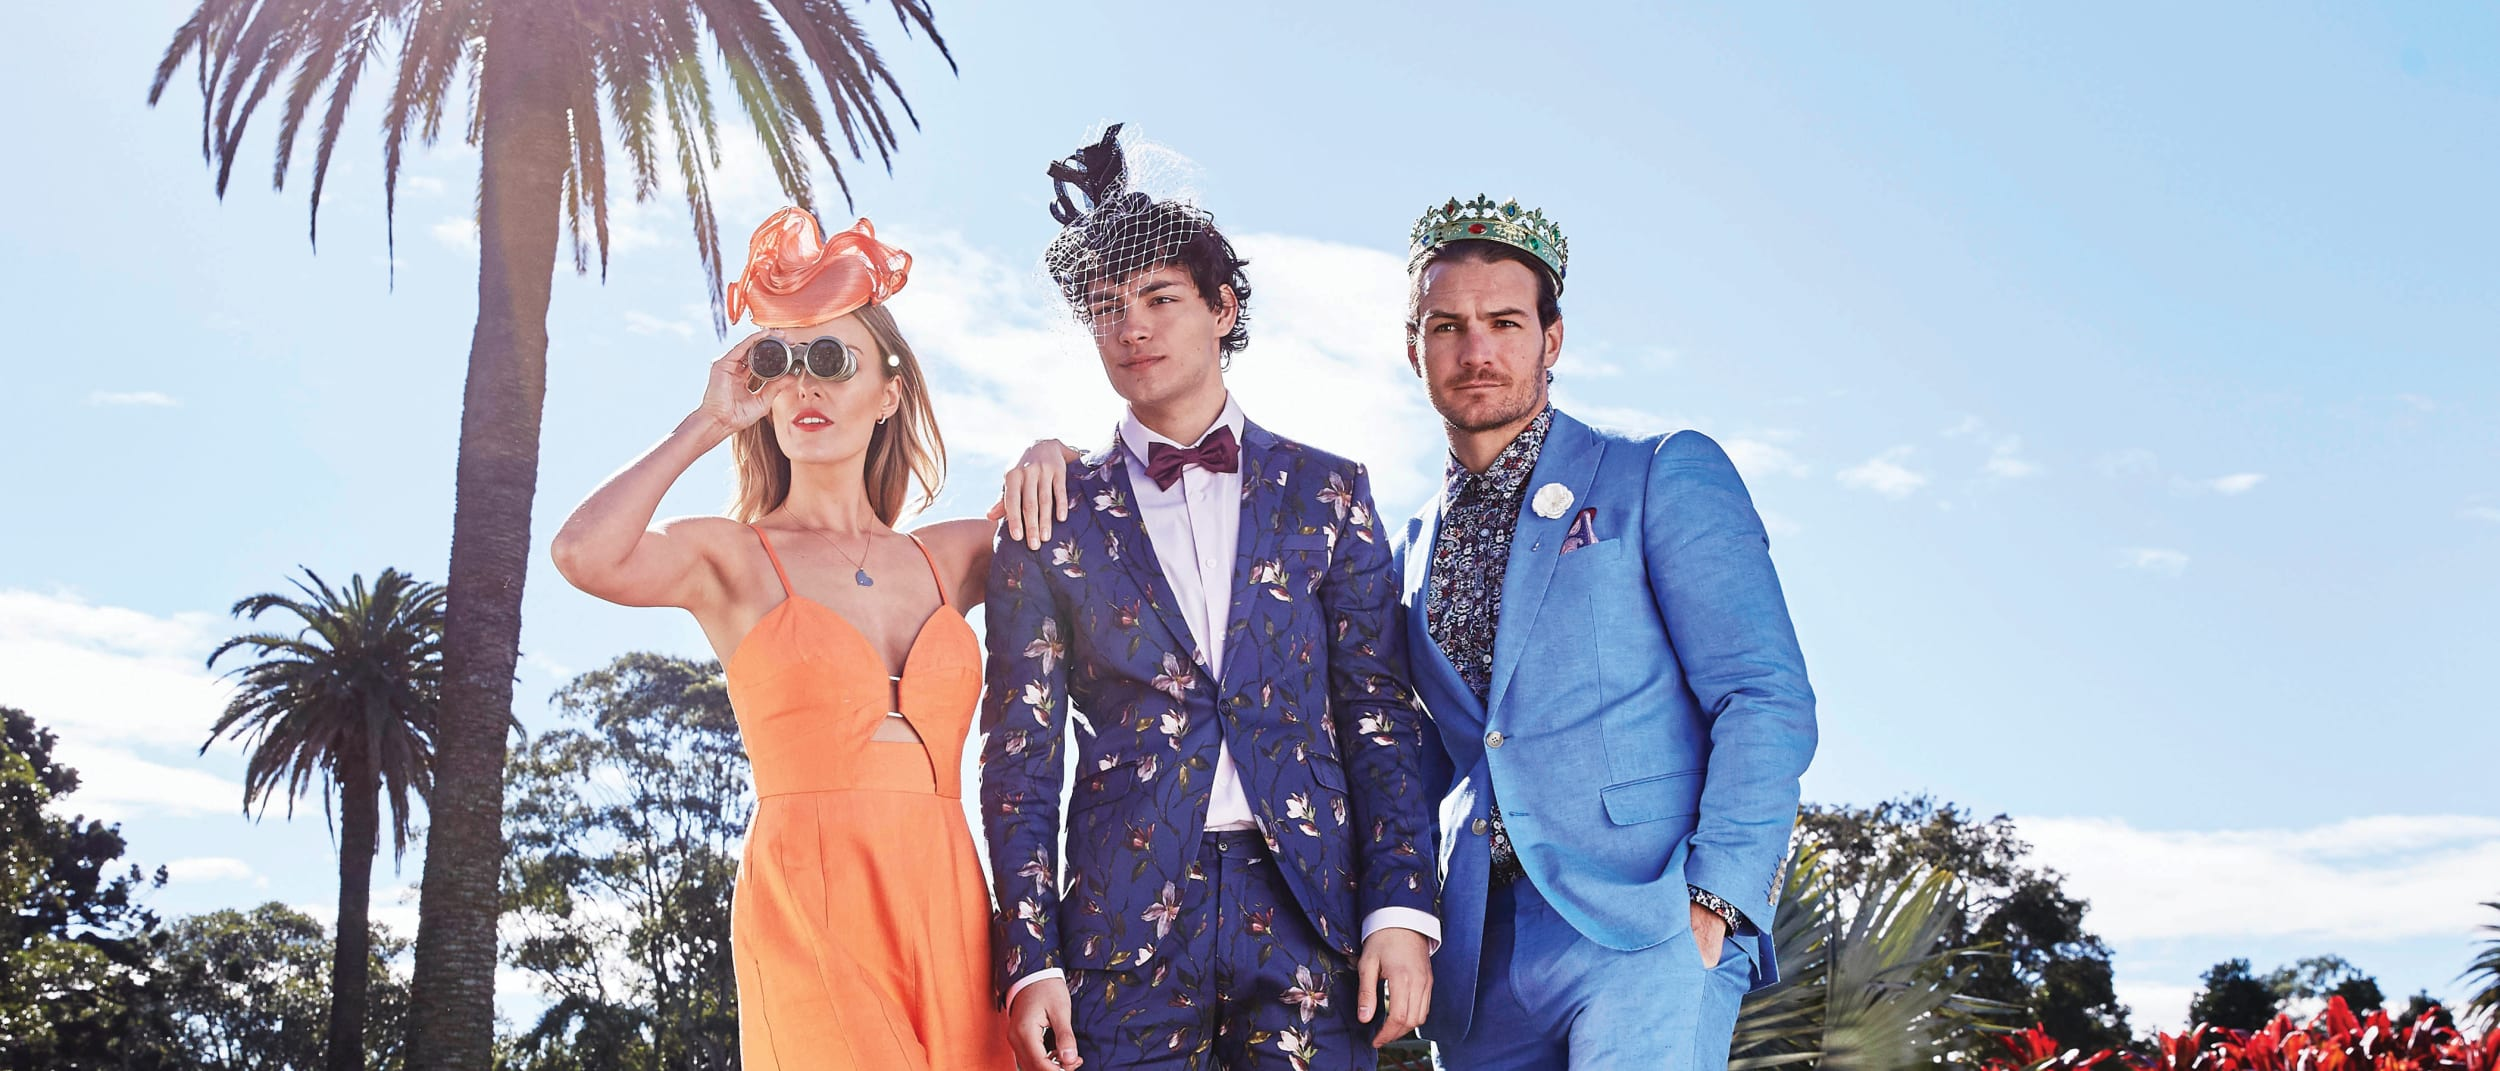 4 new trends to wear to the races